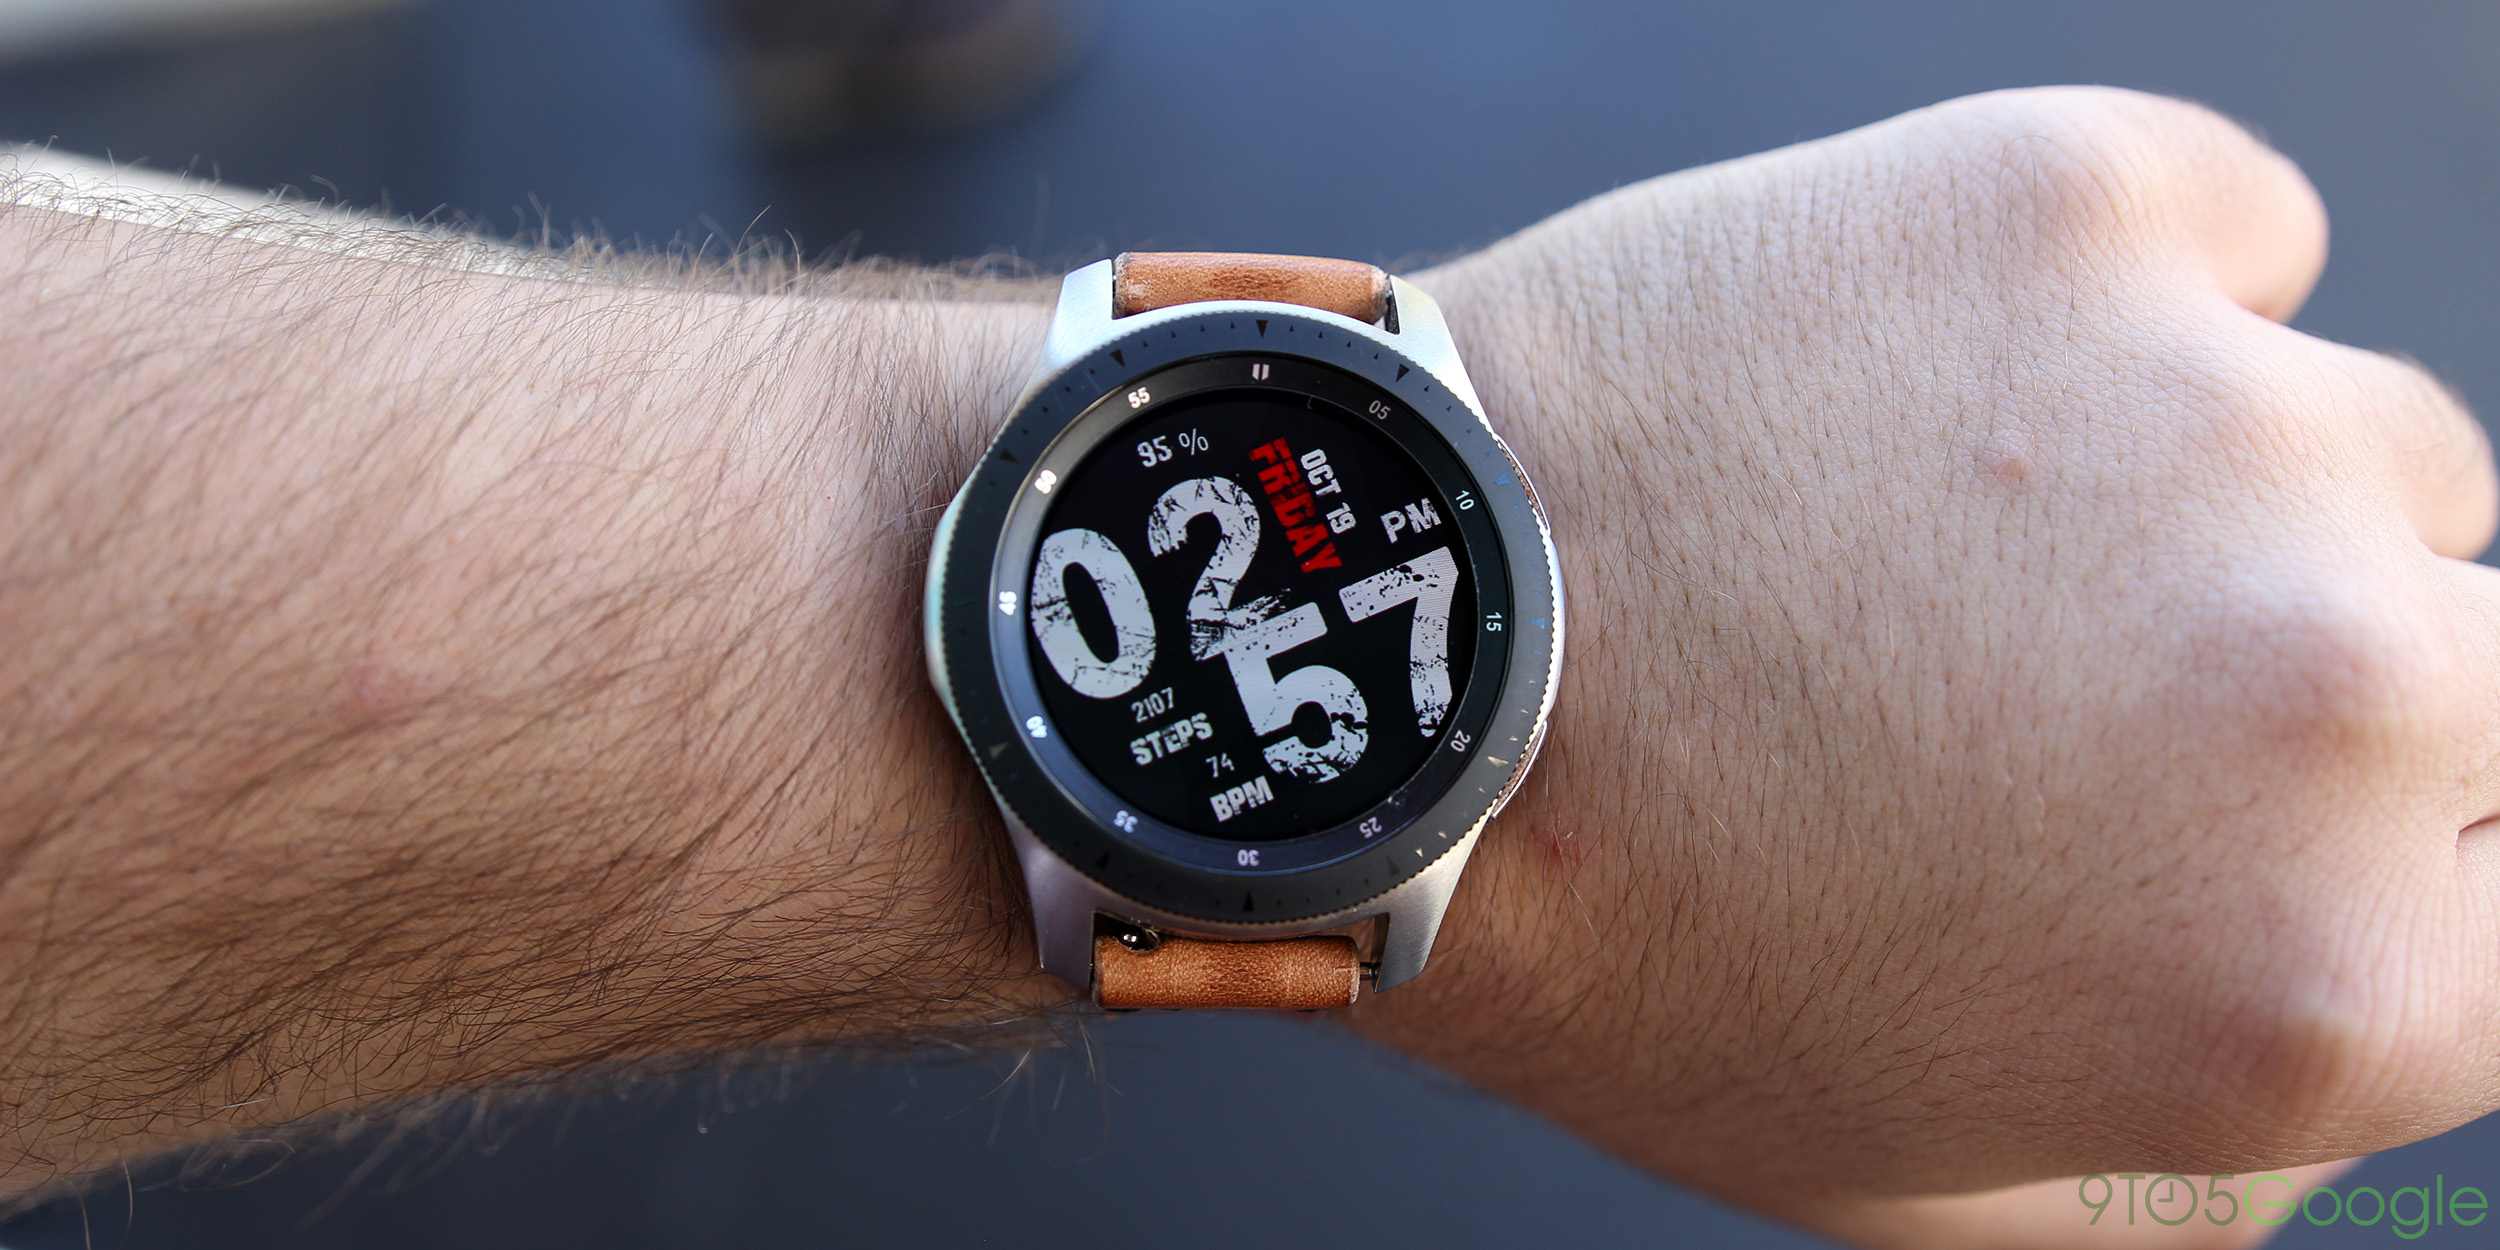 ea6086f8c Best Android Smartwatches: Wear OS, Samsung, more - 9to5Google